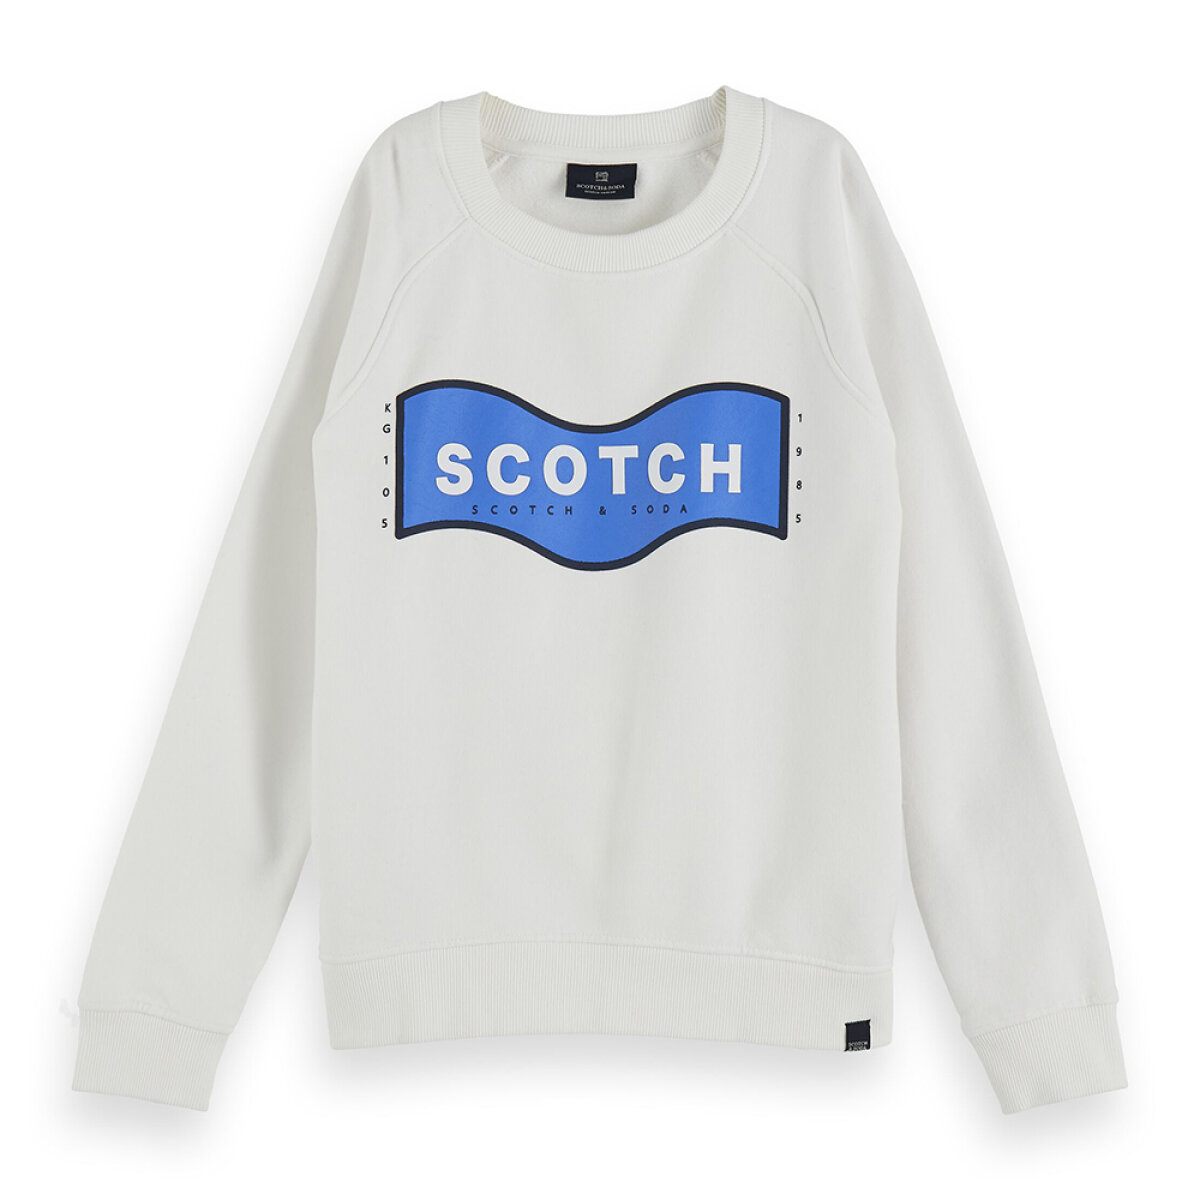 Scotch & Soda jongens sweater 157231 wit